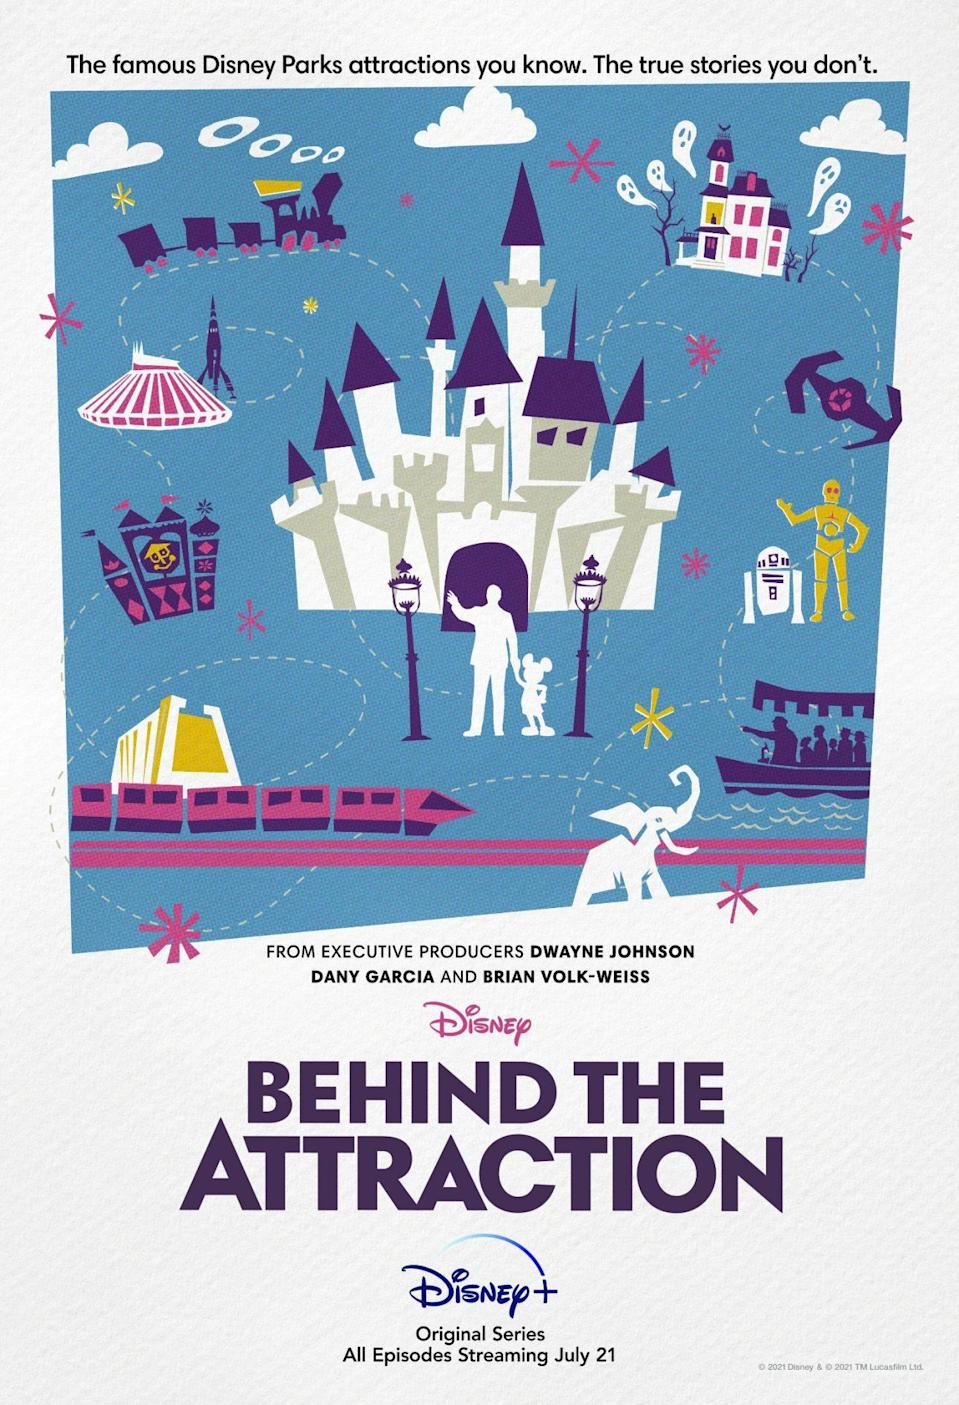 BEHIND THE ATTRACTION Trailer Teases Disney Parks Ride Secrets_1